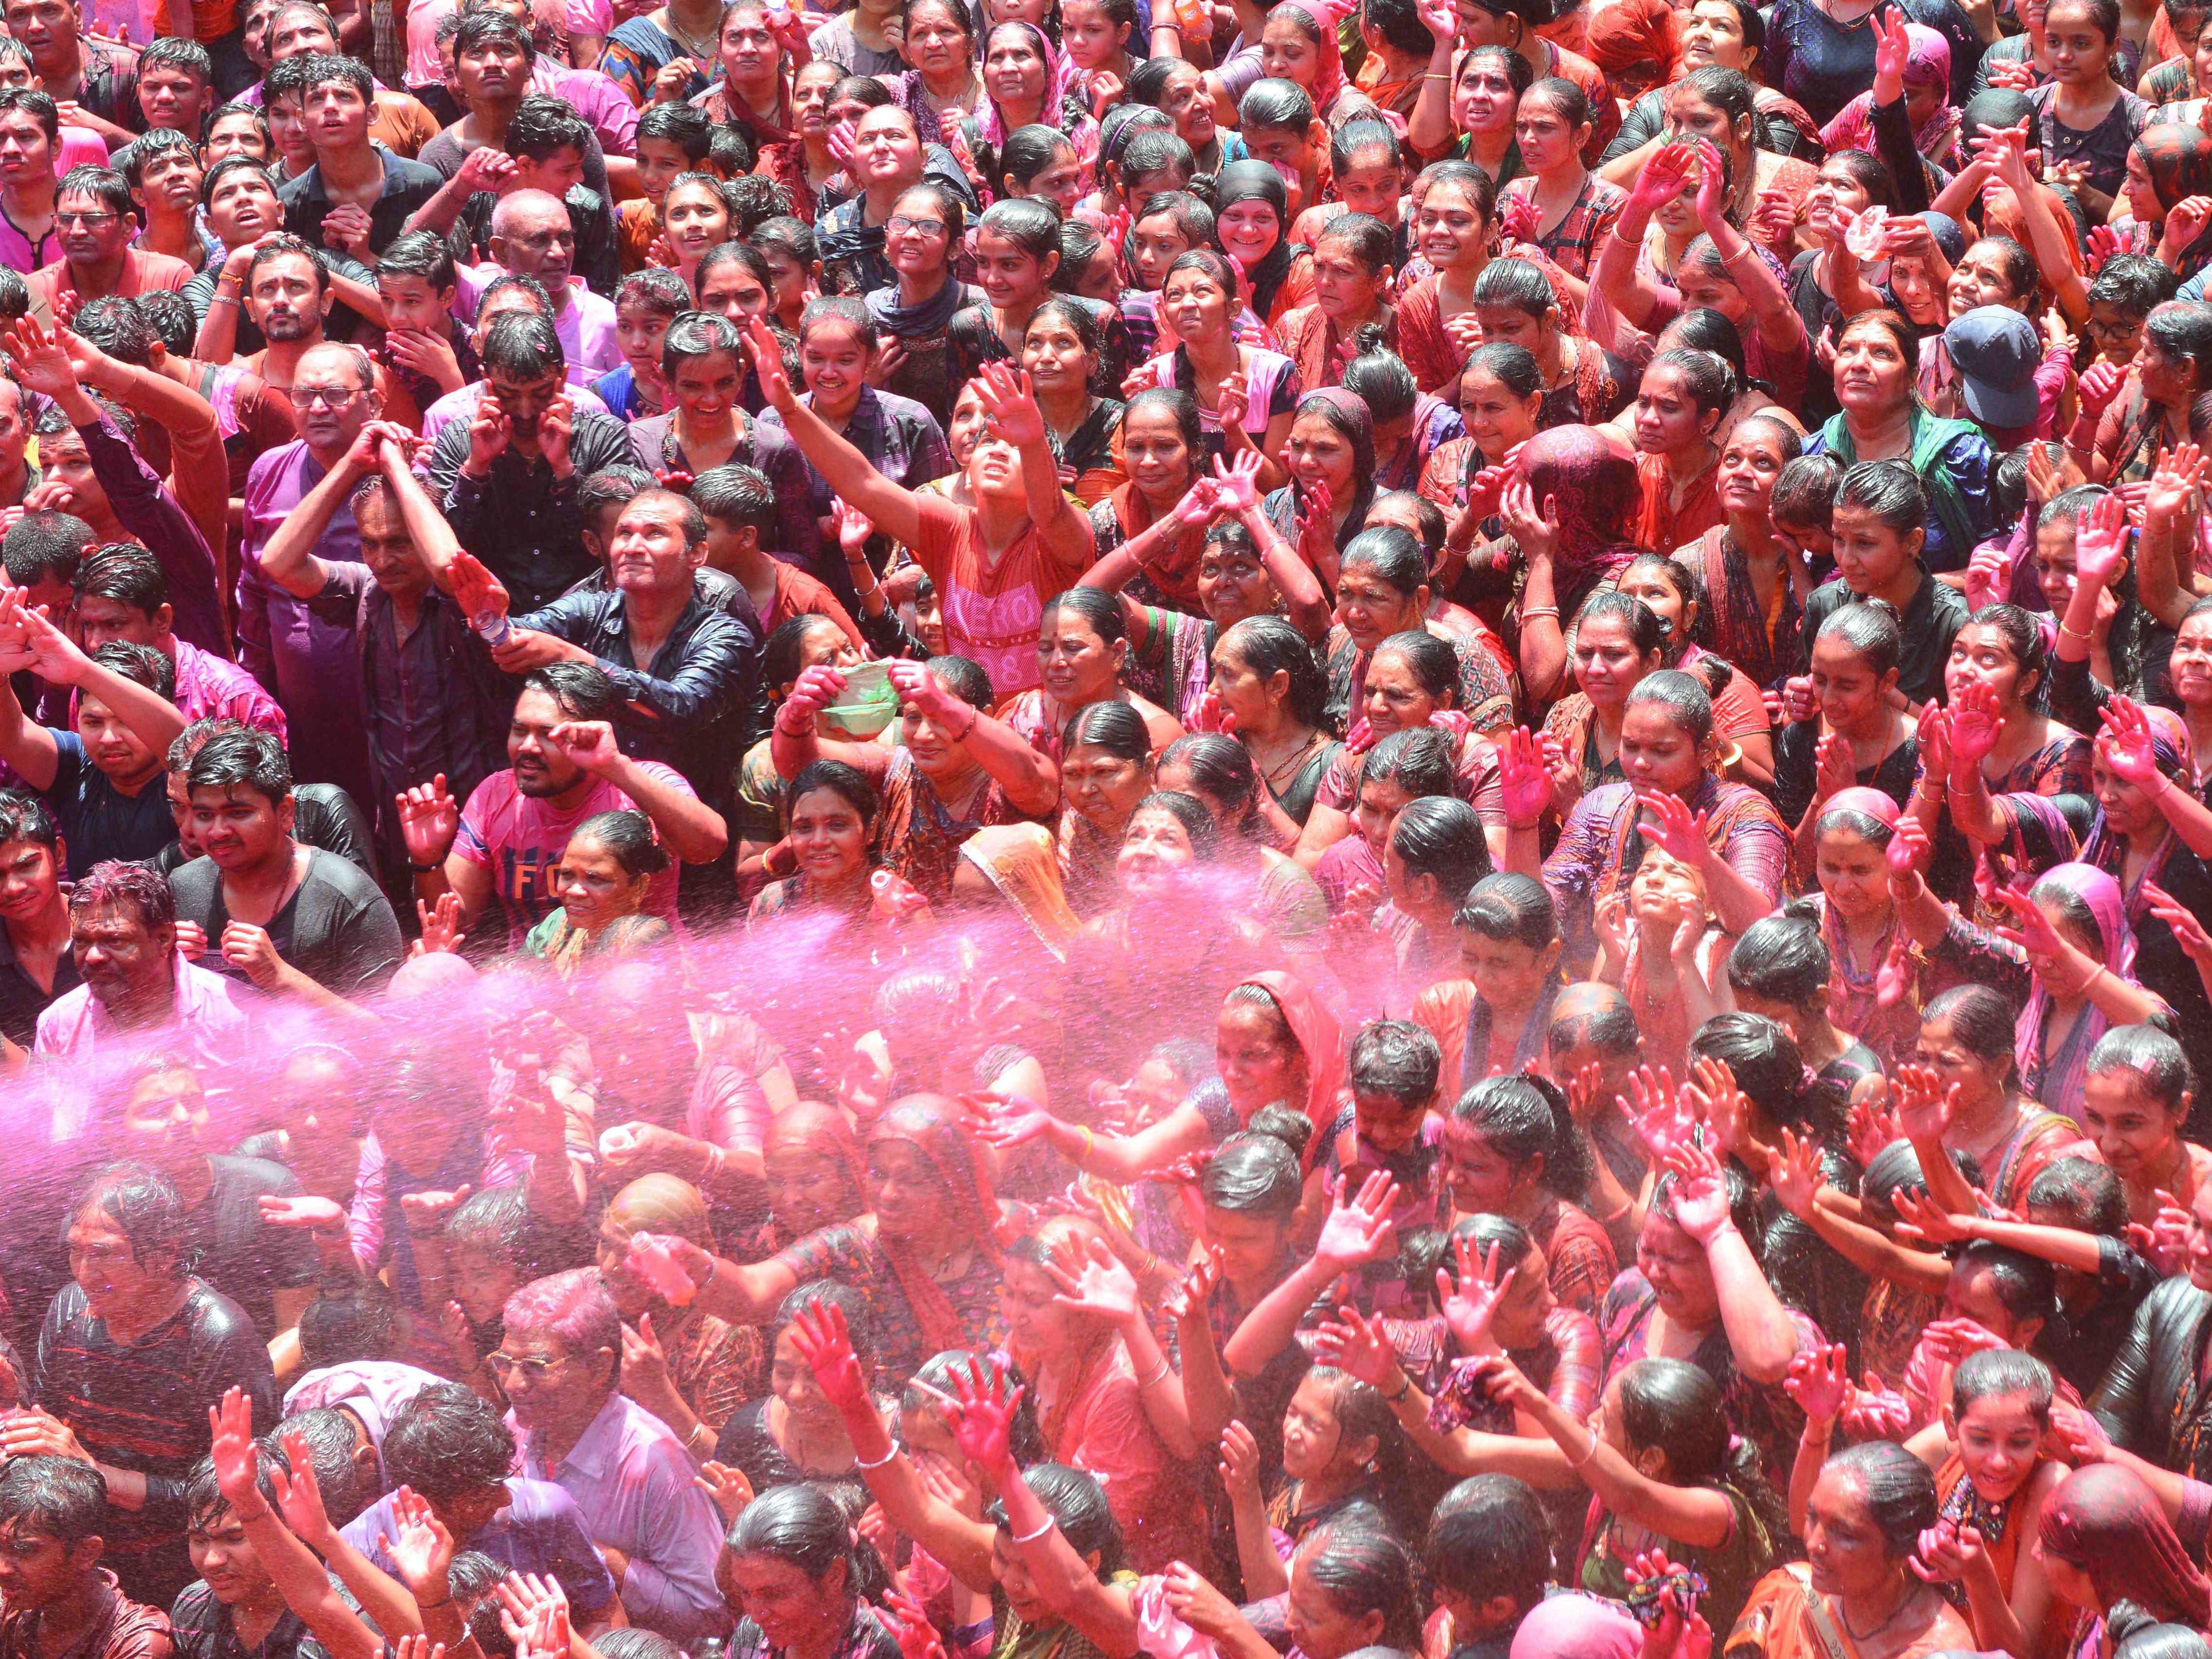 Indian Hindu devotees are sprayed with colored water as they celebrate the Holi festival at the Kalupur Swaminarayan Temple, in Ahmedabad on March 20, 2019.